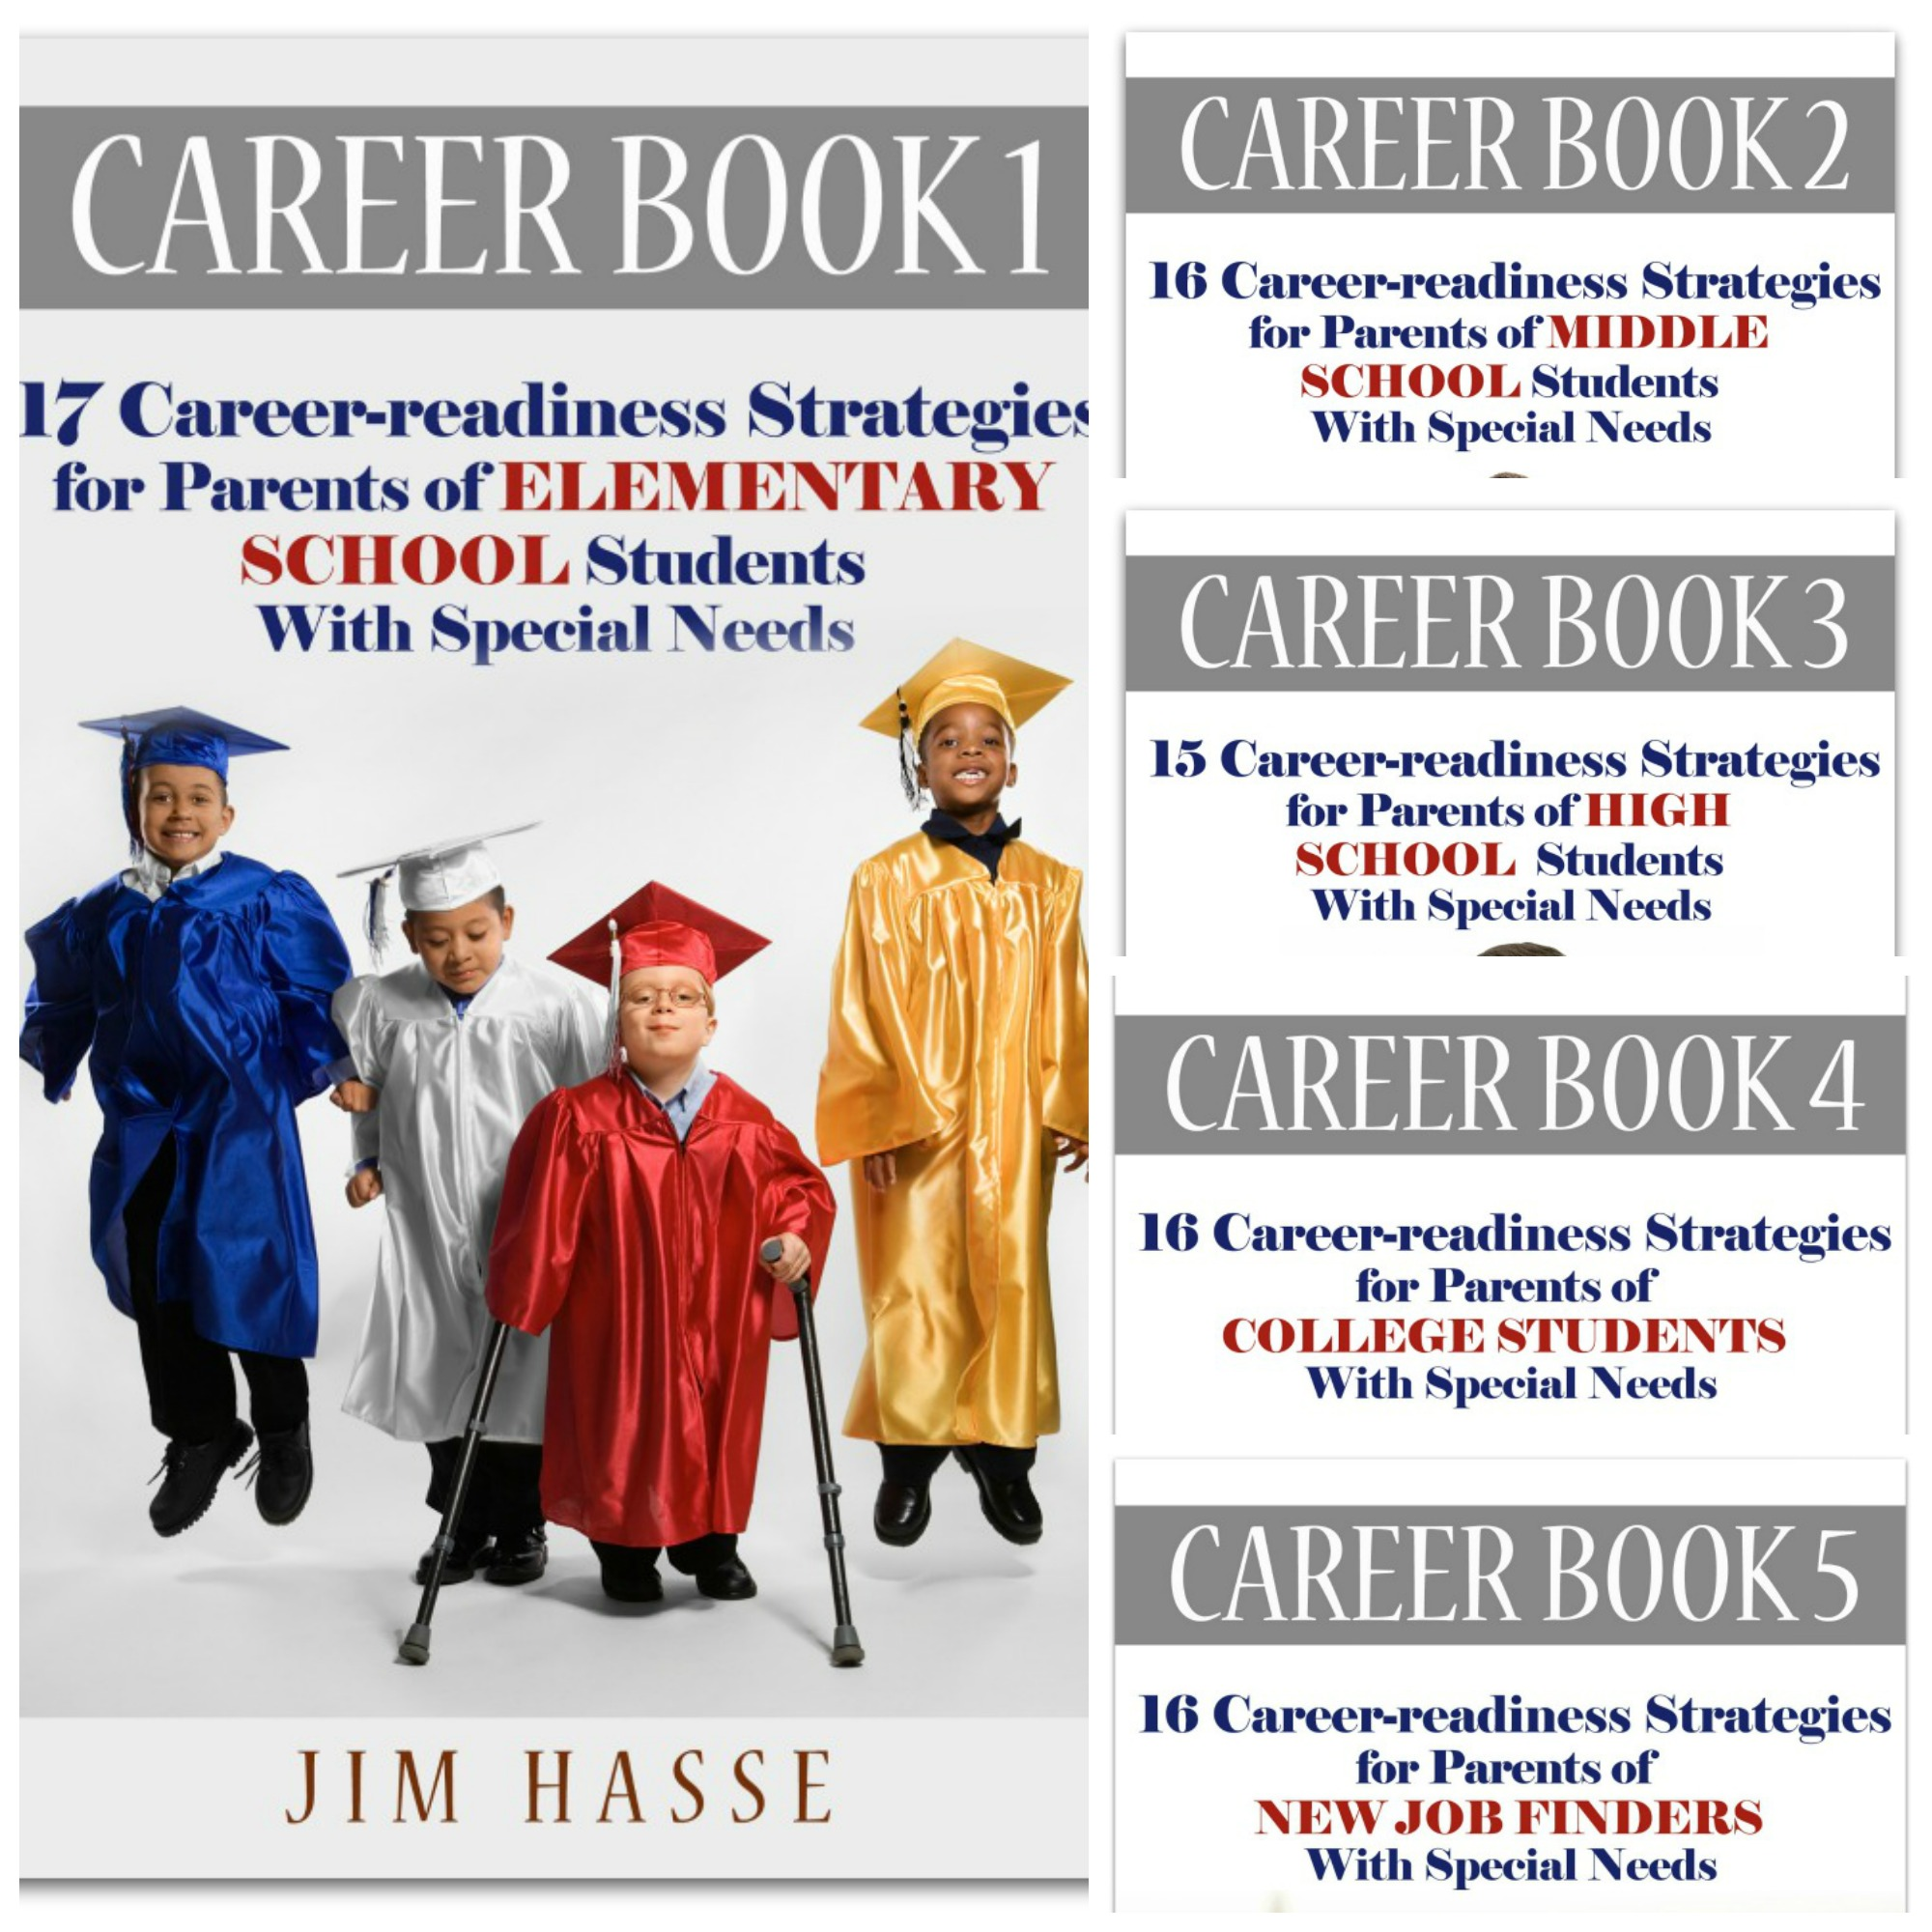 Cover of Career Book 1 showing 4 elementary school students in graduation cap and cowns -- one with crutches. Covers of other four Career Books are shown in a smaller sidebar